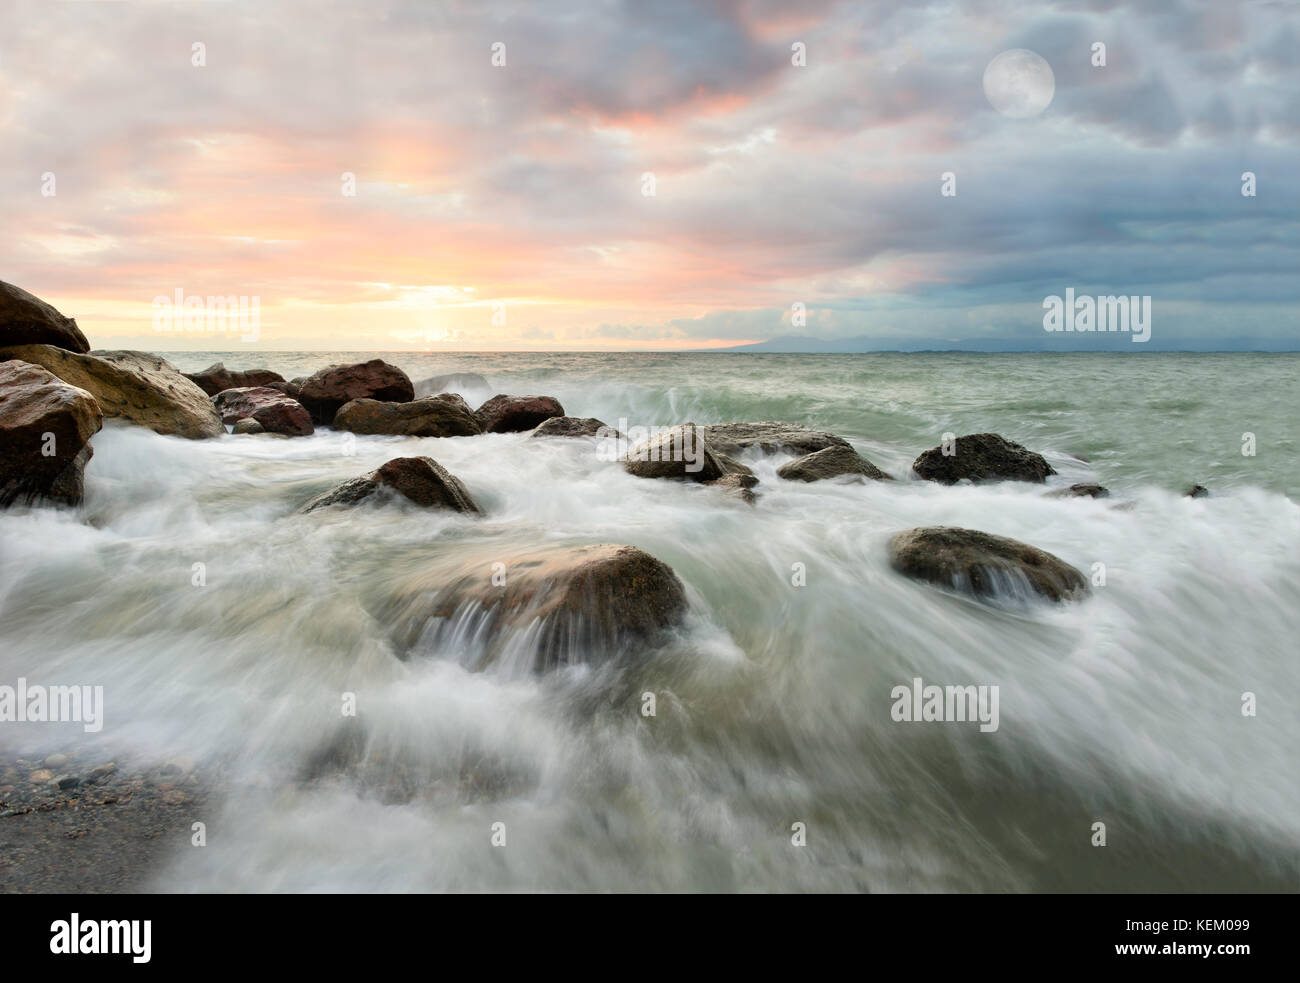 Ocean moon waves sunset is a surreal abstract seascape with waves rushing over rocks as the sun sets on the ocean Stock Photo